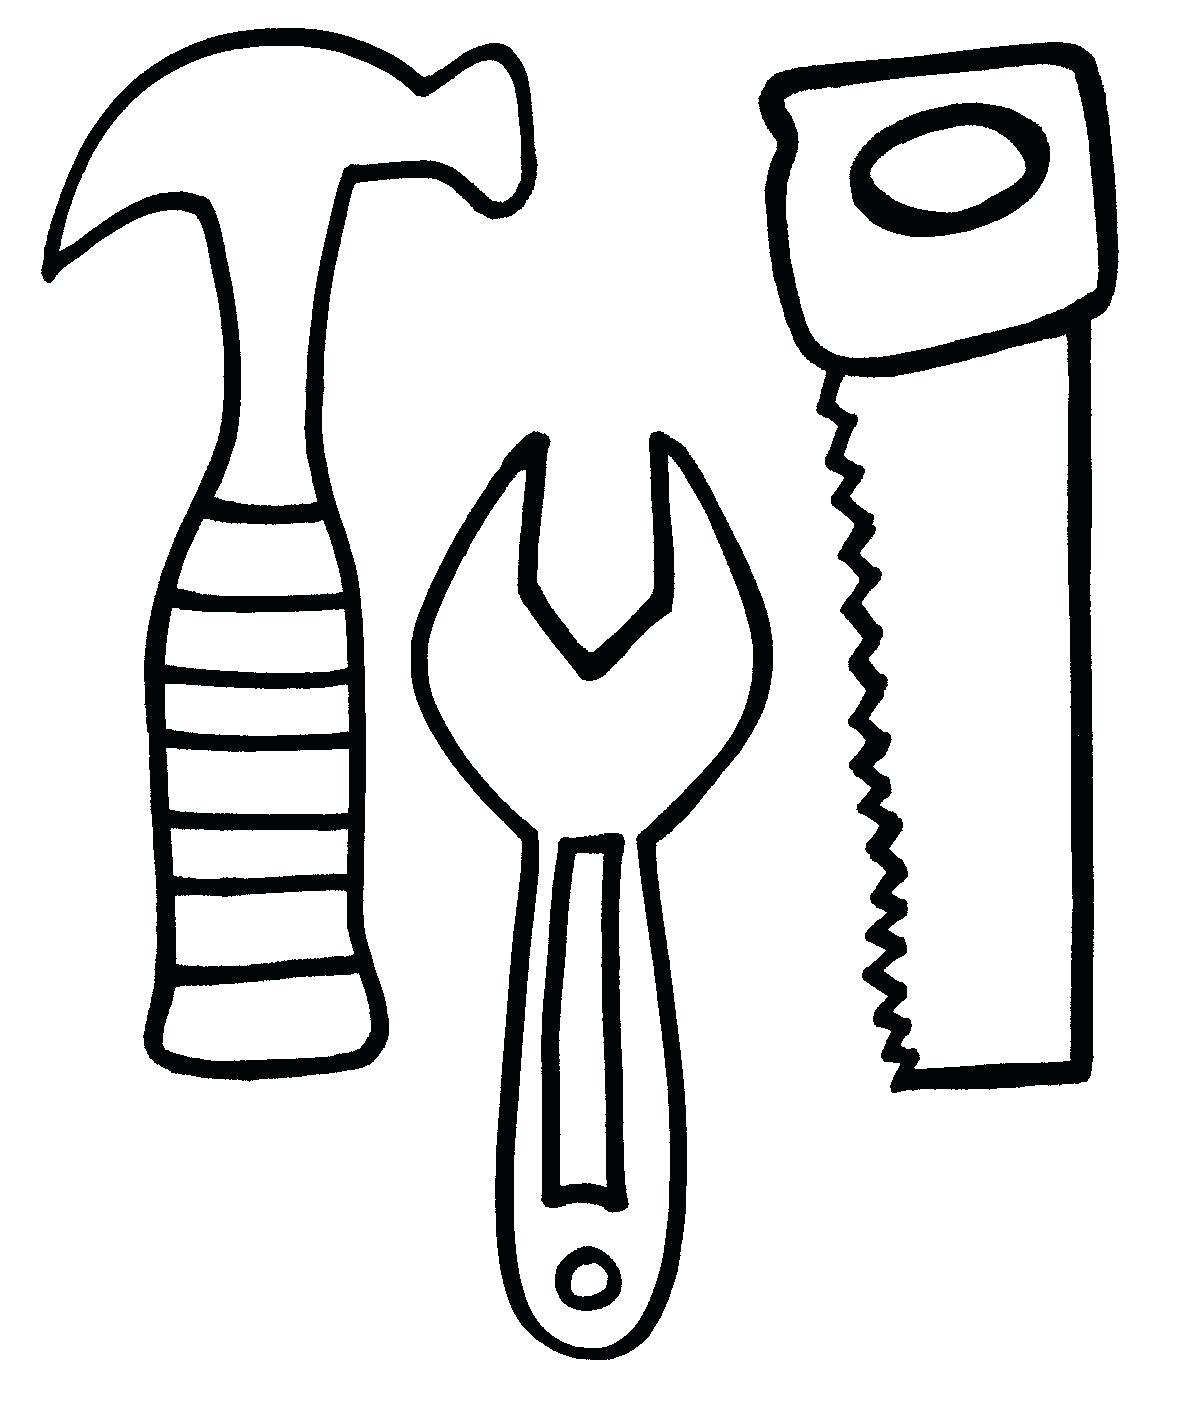 Tool Box Drawing at GetDrawings.com | Free for personal use Tool Box ...